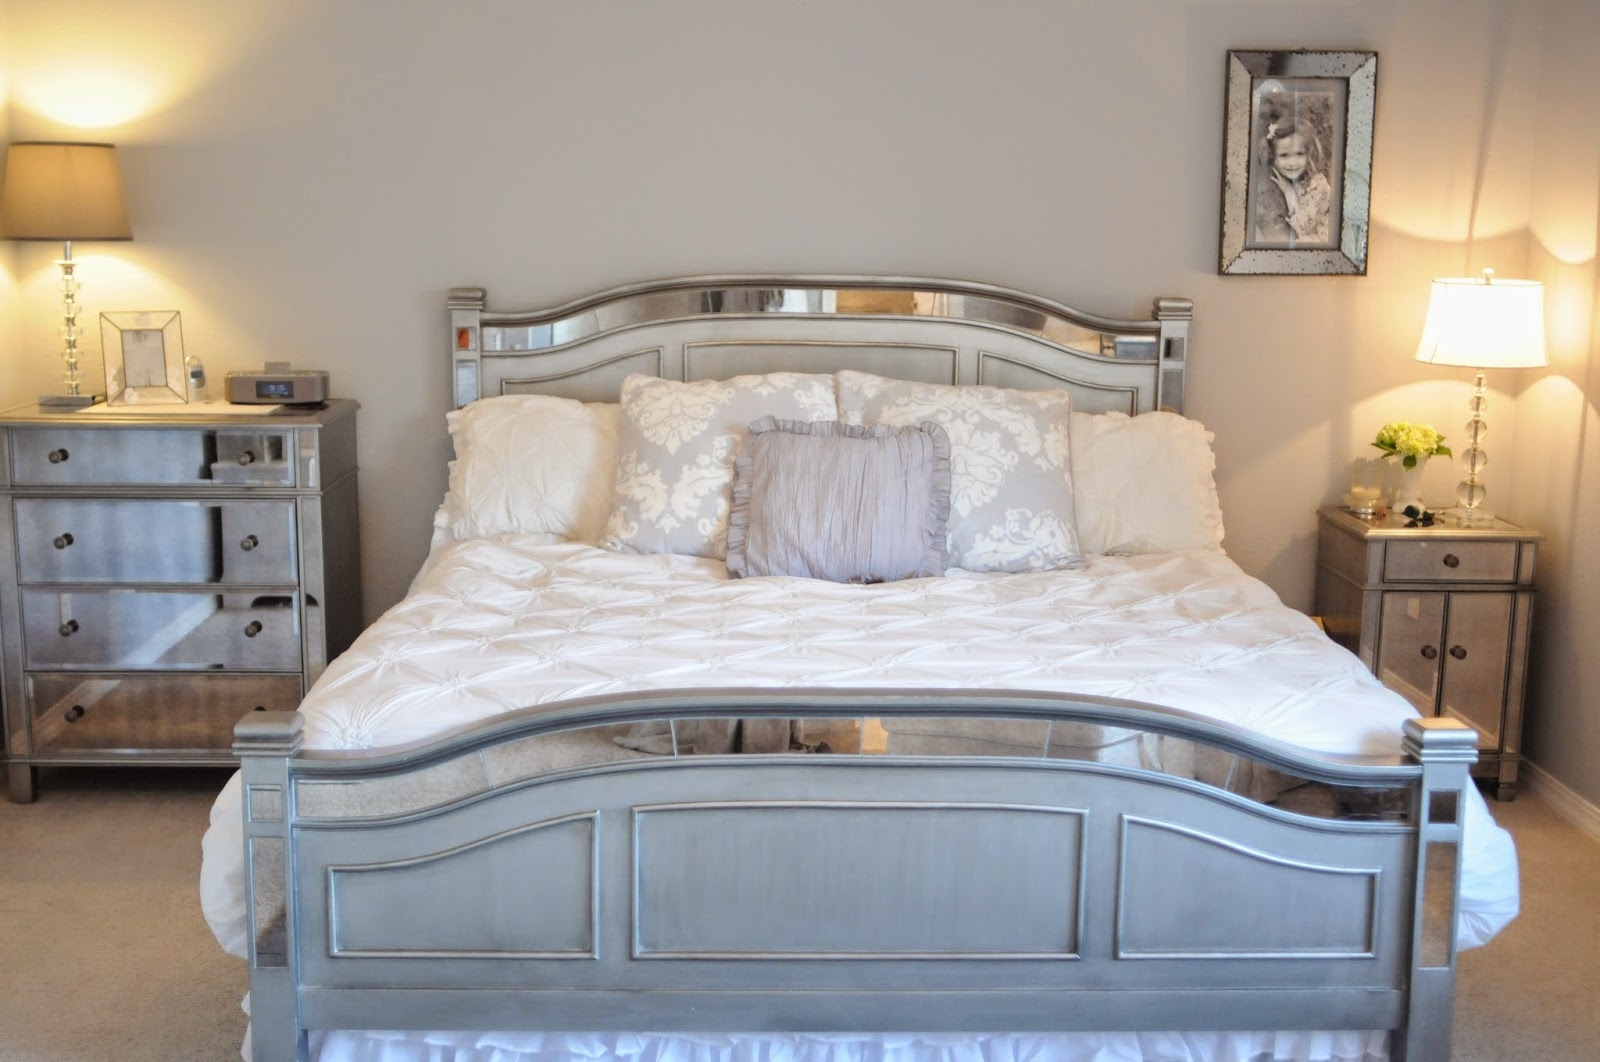 Bedroom Set - Hayworth from Pier One Imports | Antiques & Estate ...